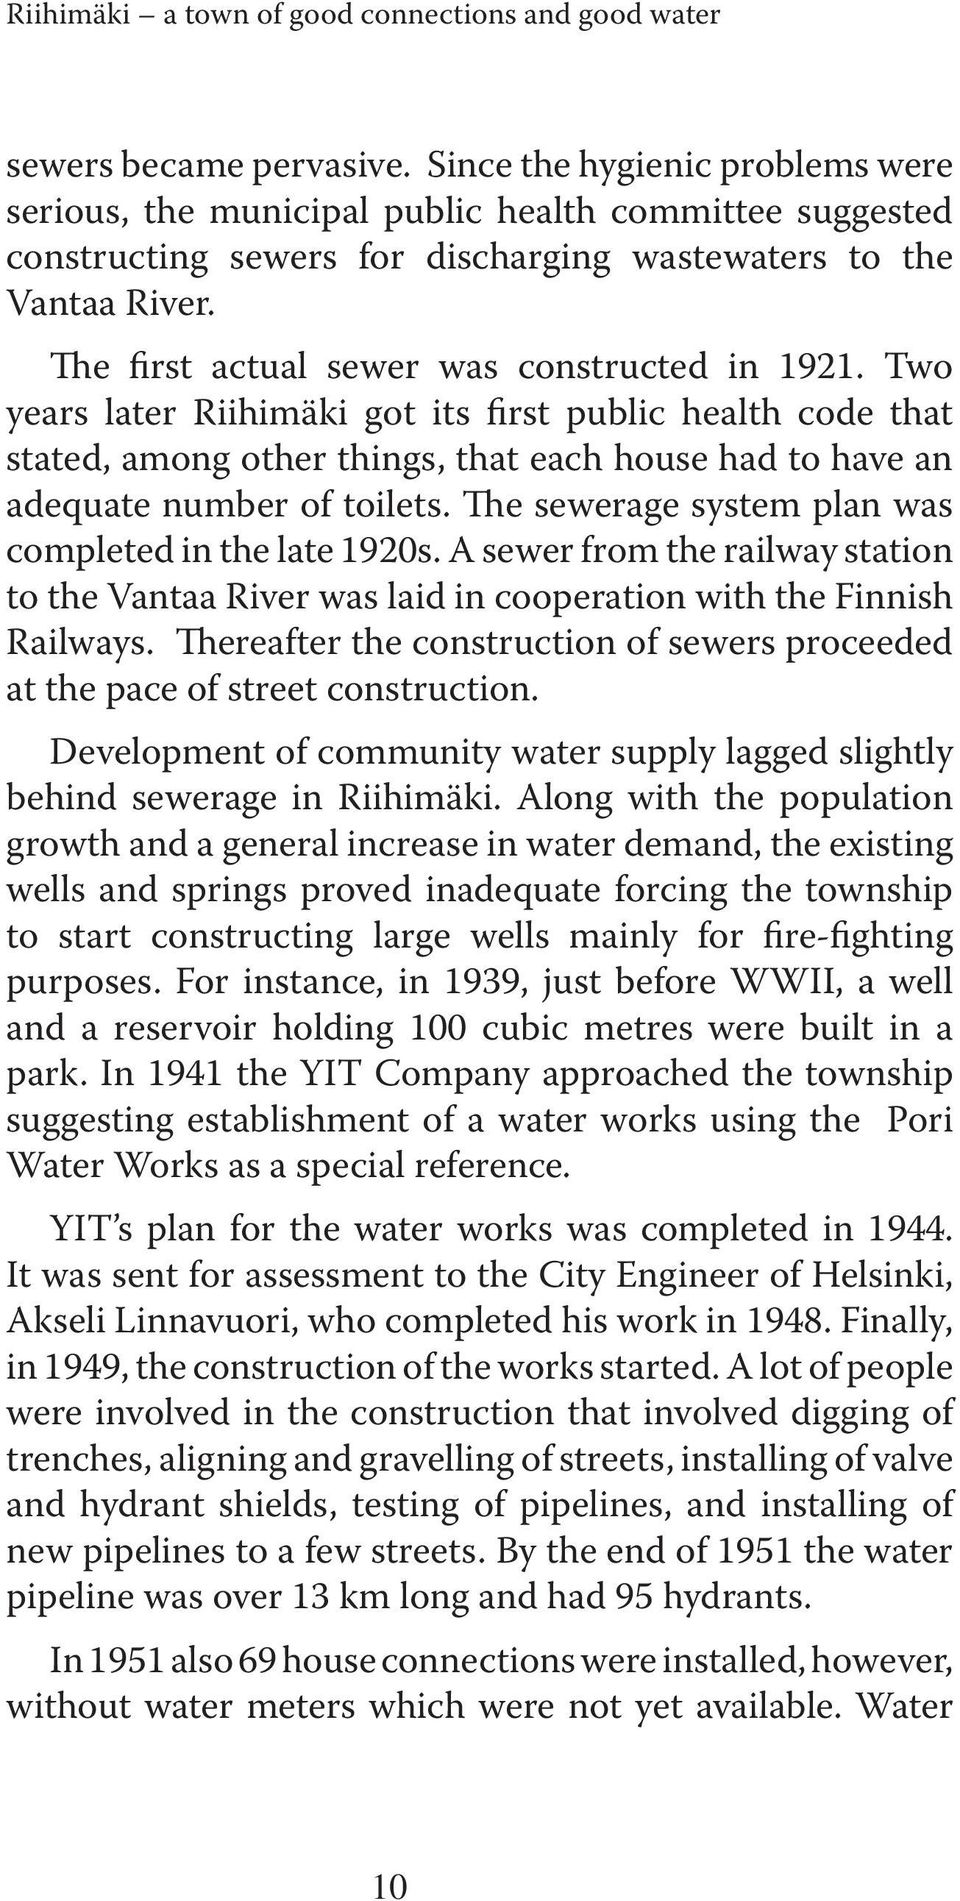 The first actual sewer was constructed in 1921. Two years later Riihimäki got its first public health code that stated, among other things, that each house had to have an adequate number of toilets.